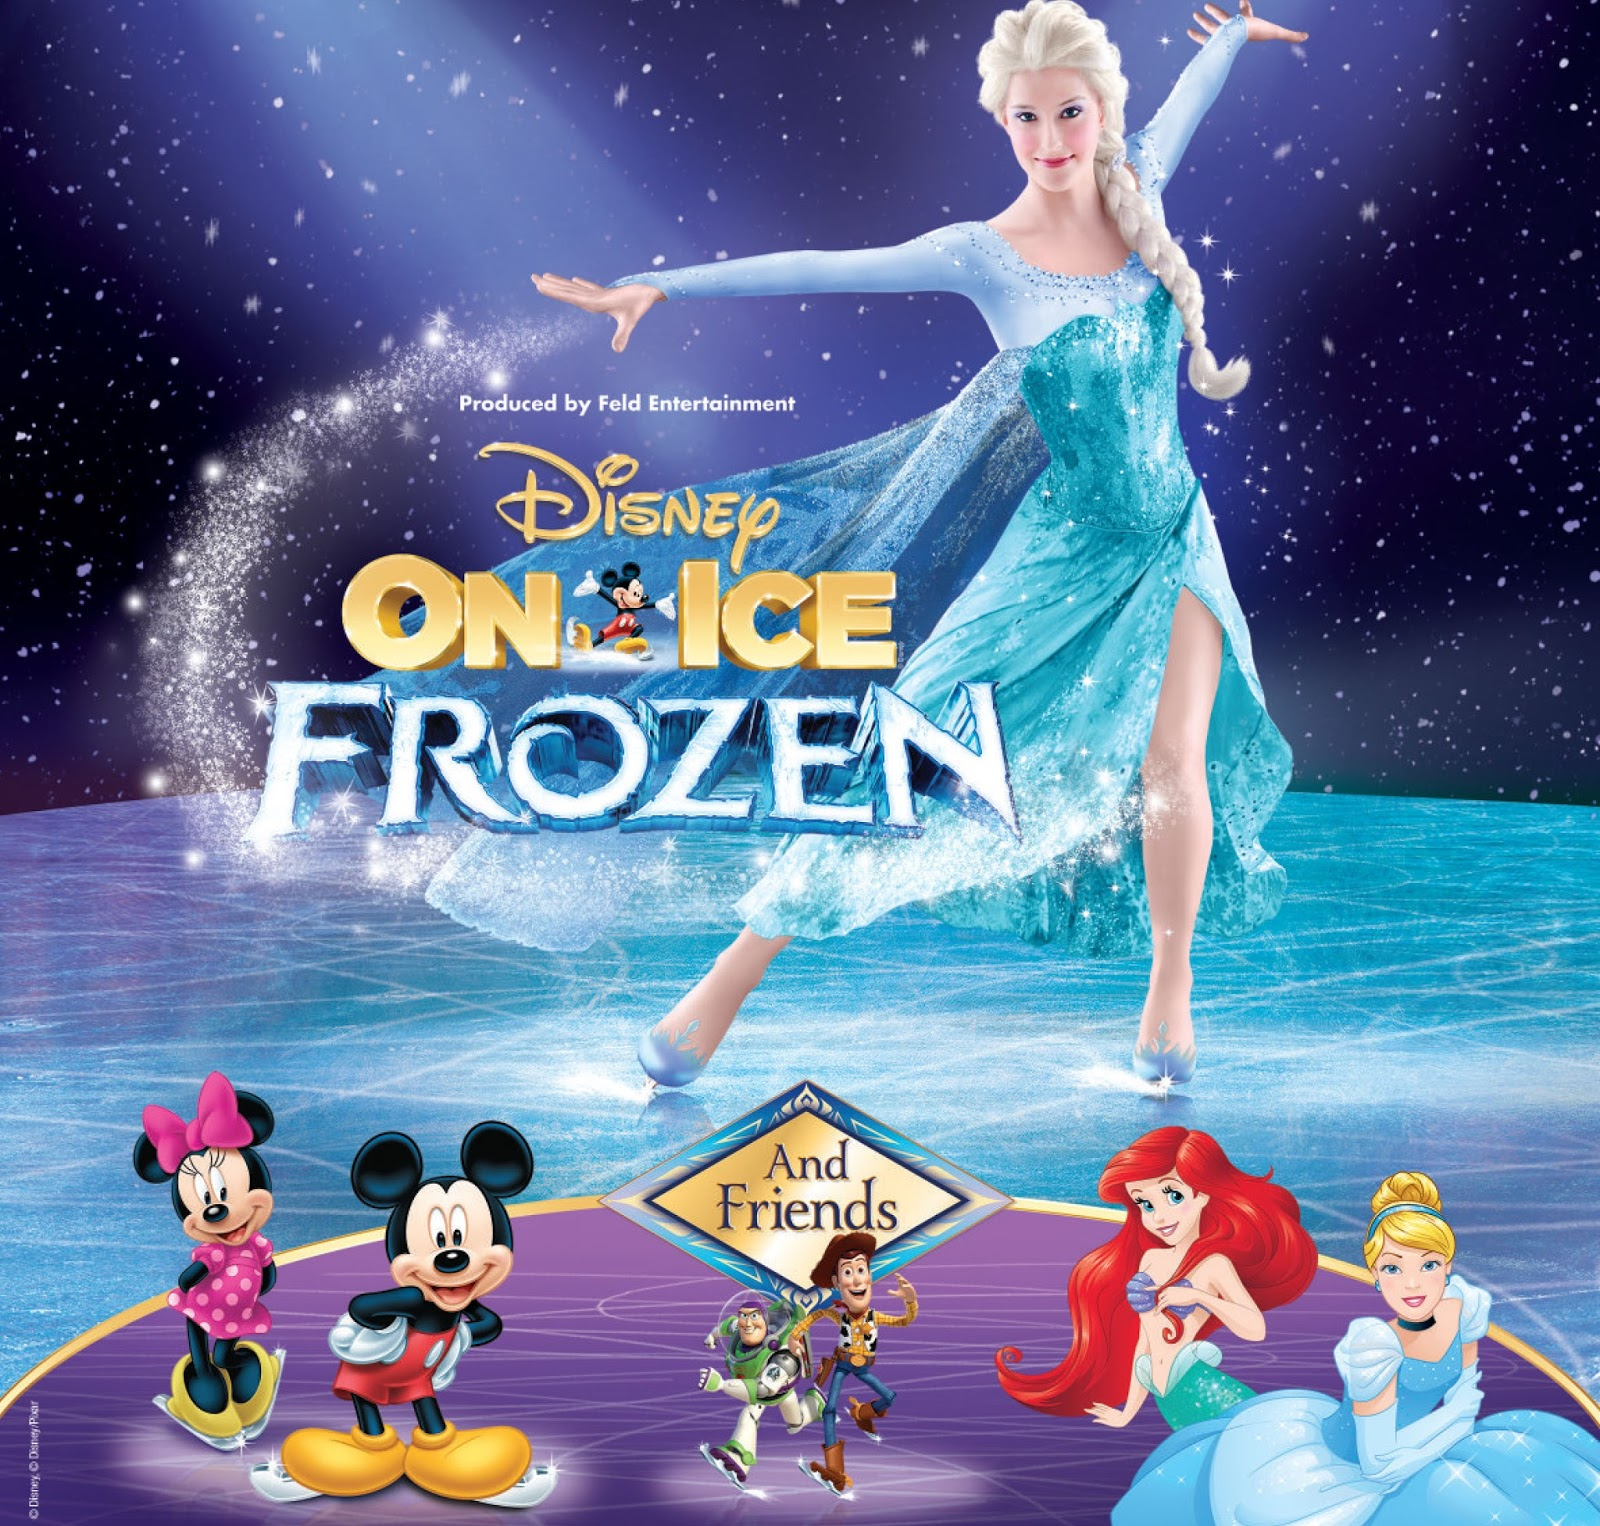 Girl scouts western pennsylvania discounted disney on ice group girl scouts western pennsylvania members can take advantage of a special discounted group ticket price of 1250 plus each girl scout in attendance will publicscrutiny Image collections